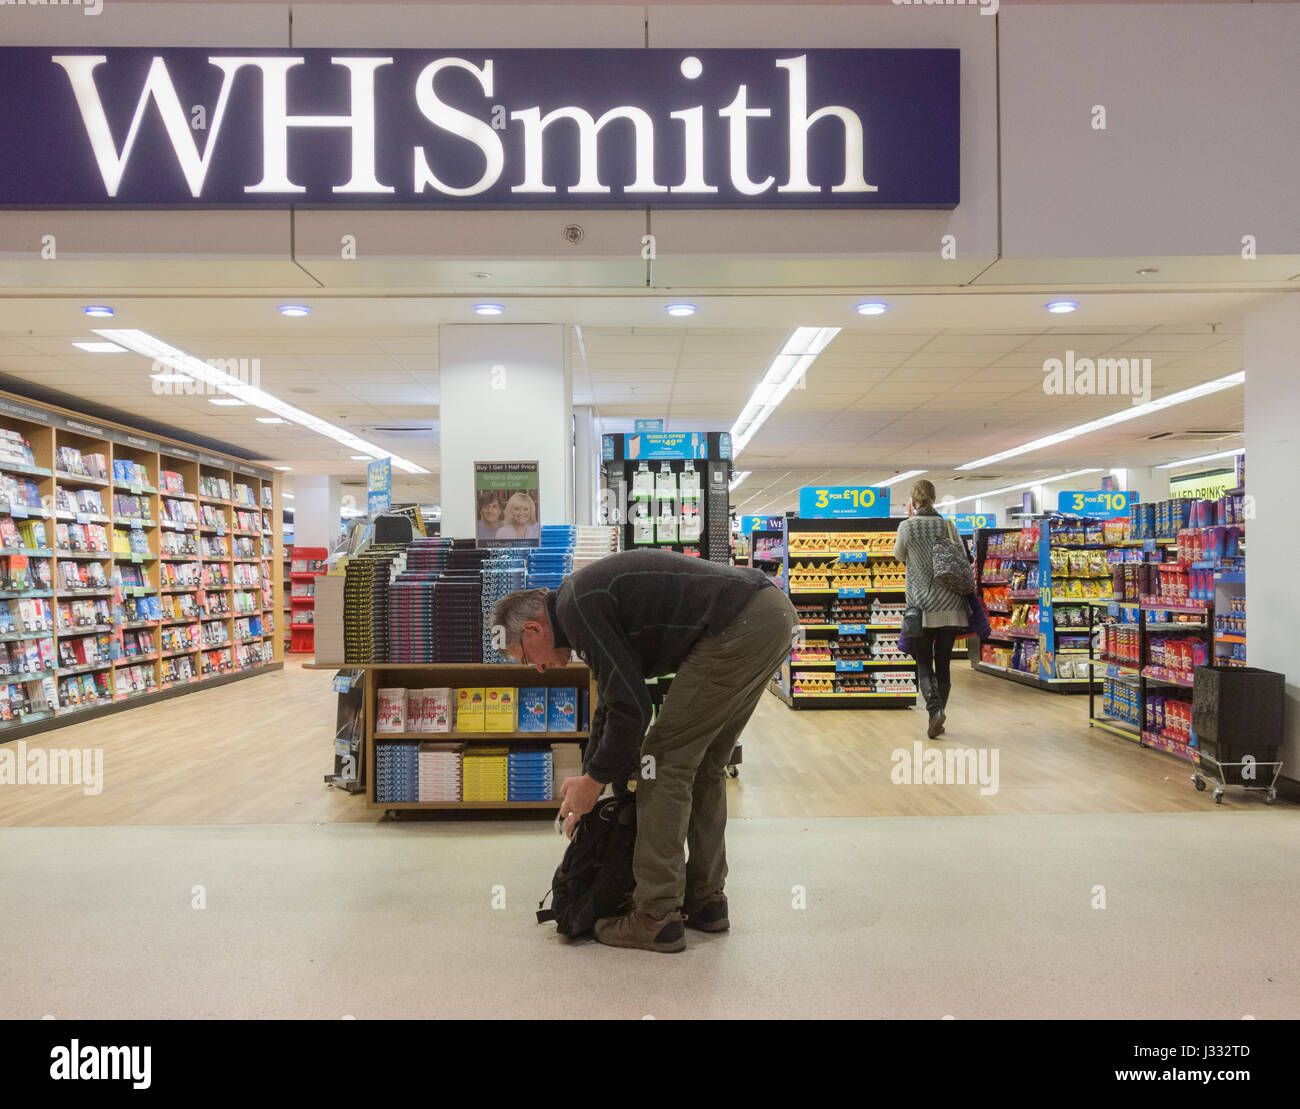 WH Smith shop at Manchester airport duty free zone. UK - Stock Image